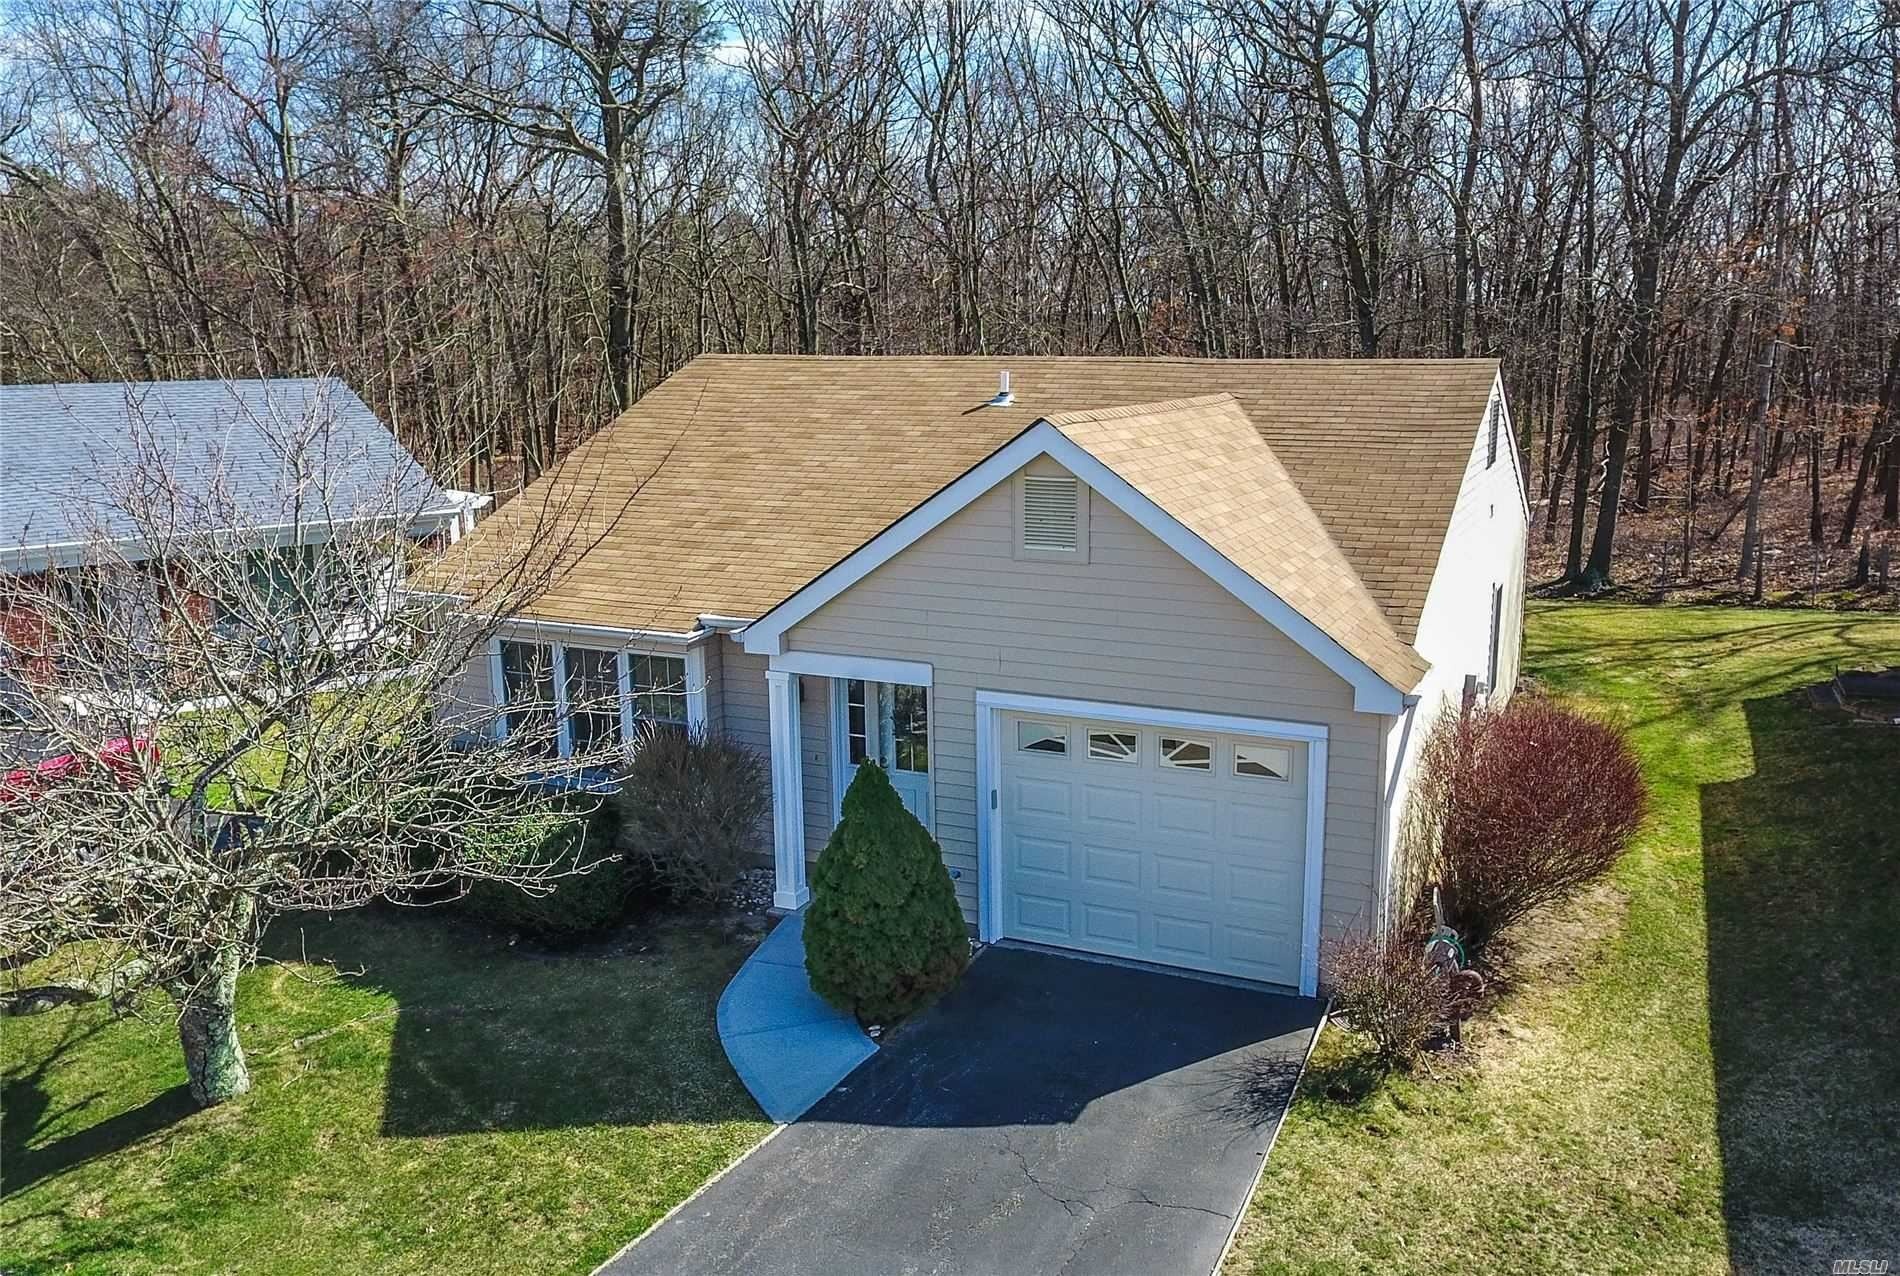 517 Lancaster Ct, Ridge, NY 11961 - MLS#: 3210587